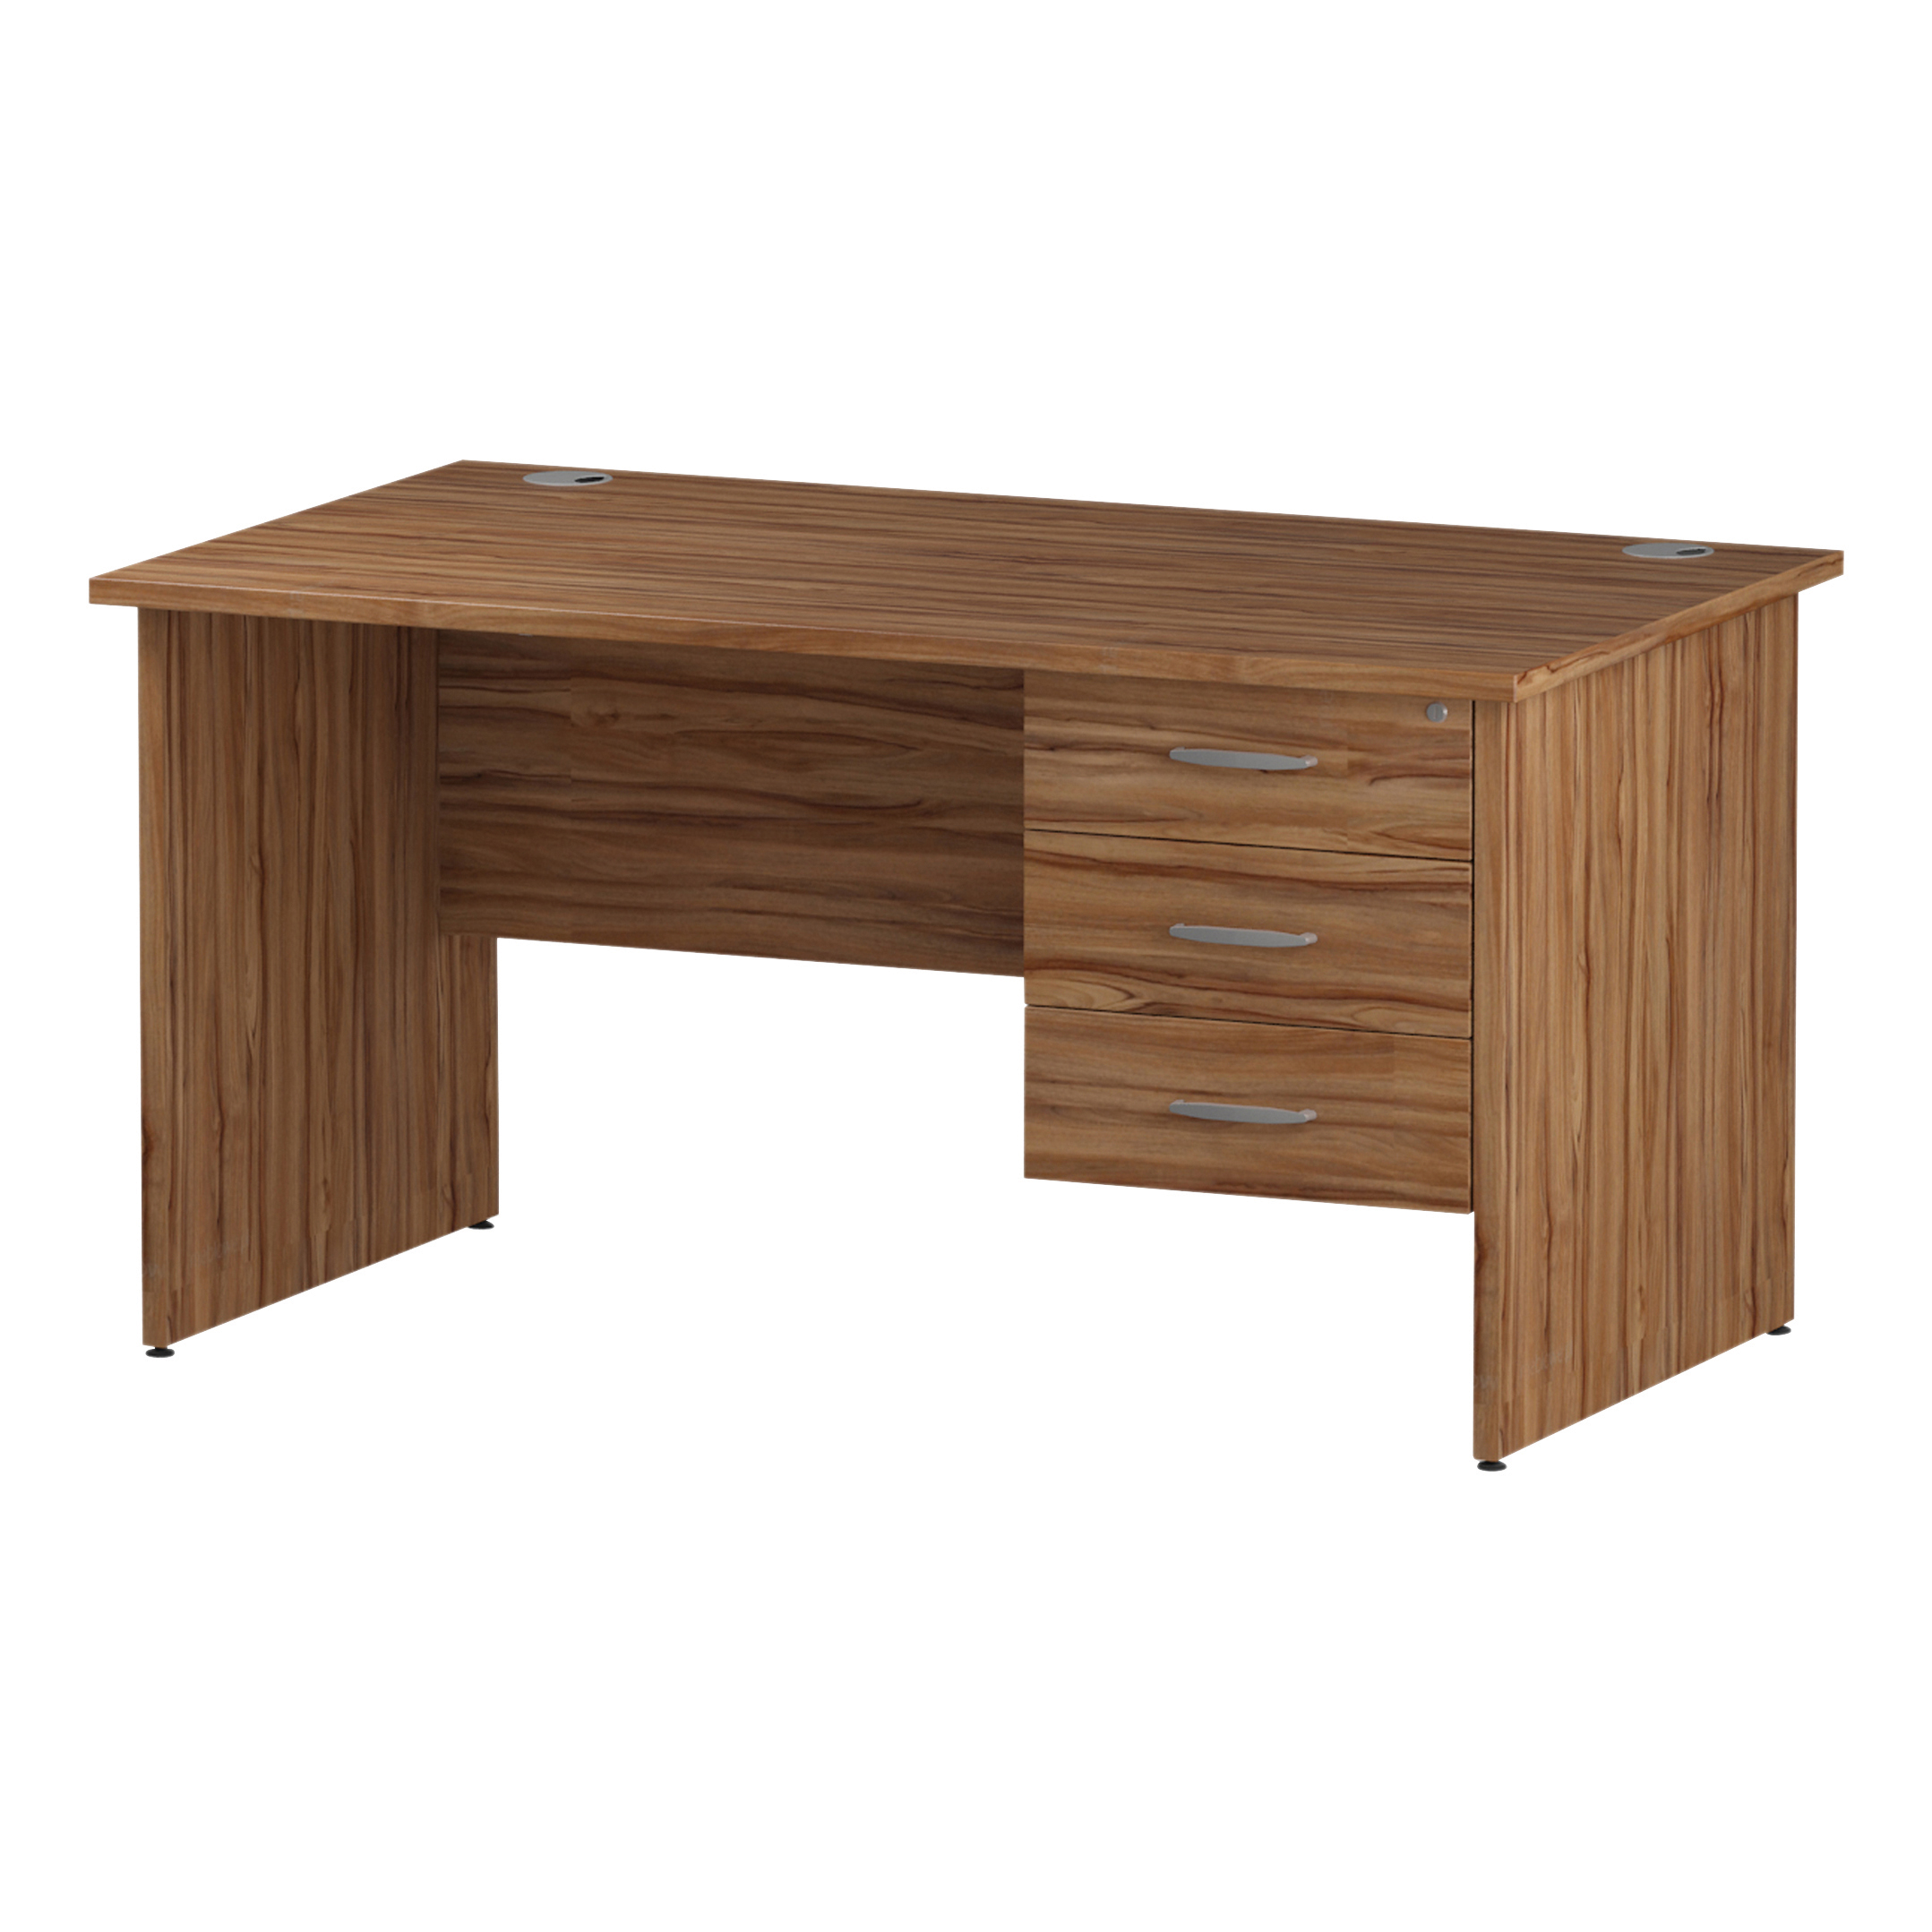 Trexus Rectangular Desk Panel End Leg 1400x800mm Fixed Pedestal 3 Drawers Walnut Ref I001974